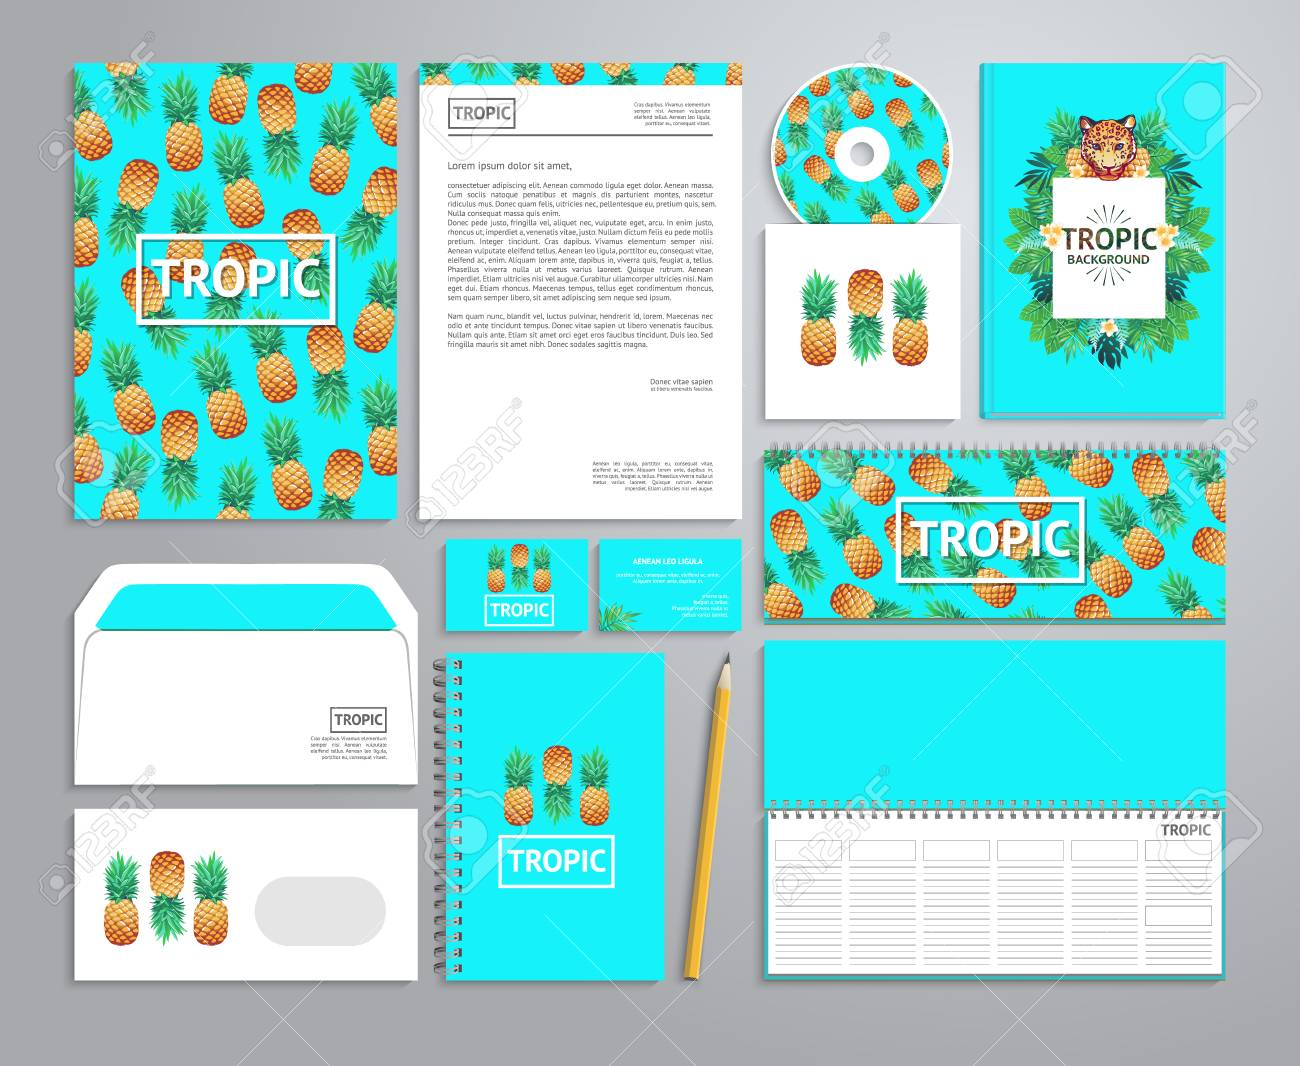 corporate identity templates in tropical style with notepad